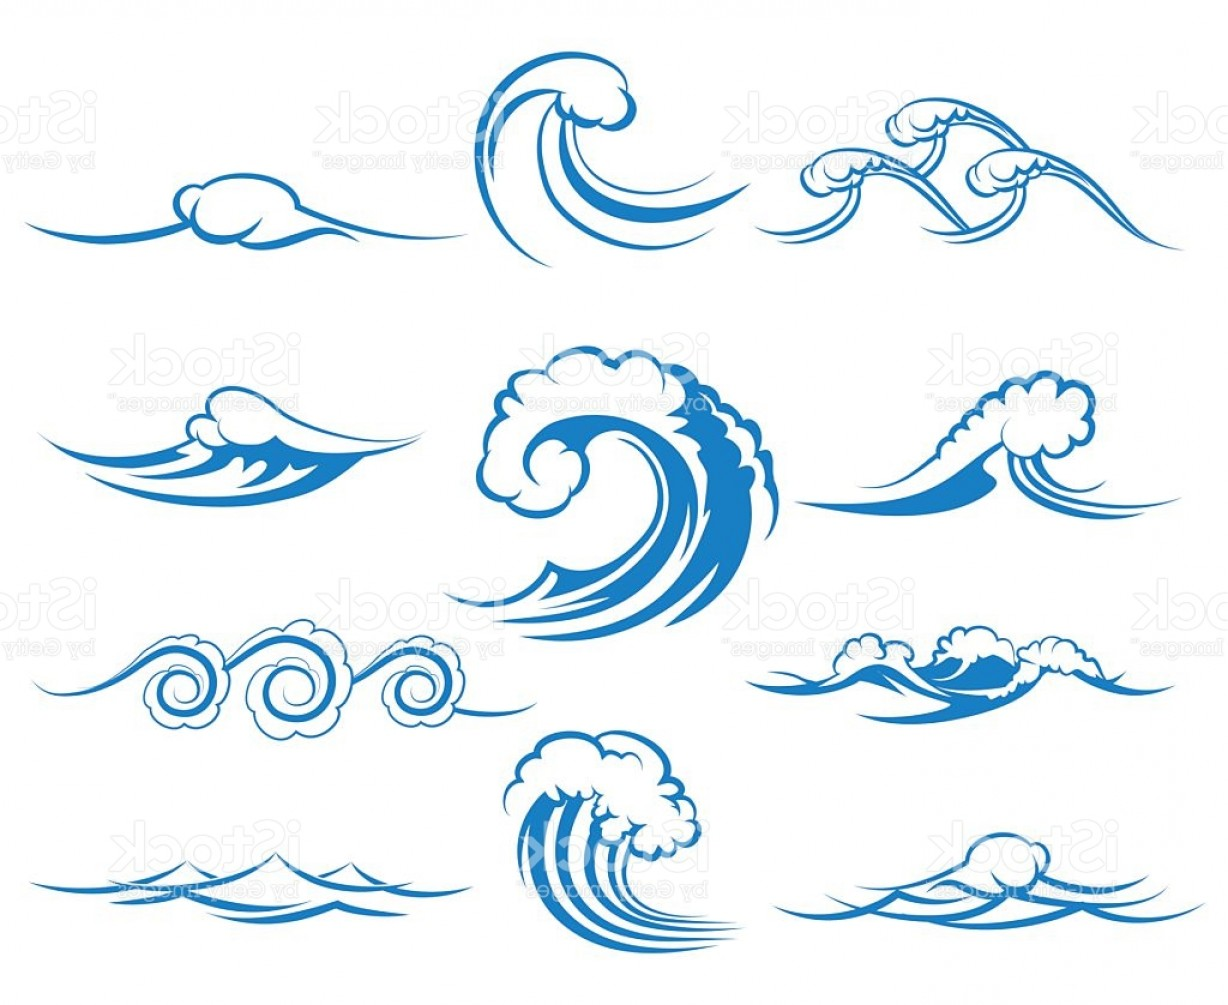 Ocean Wave Vector Illustration: Waves Of Sea Or Ocean Waves Vector Illustration Gm